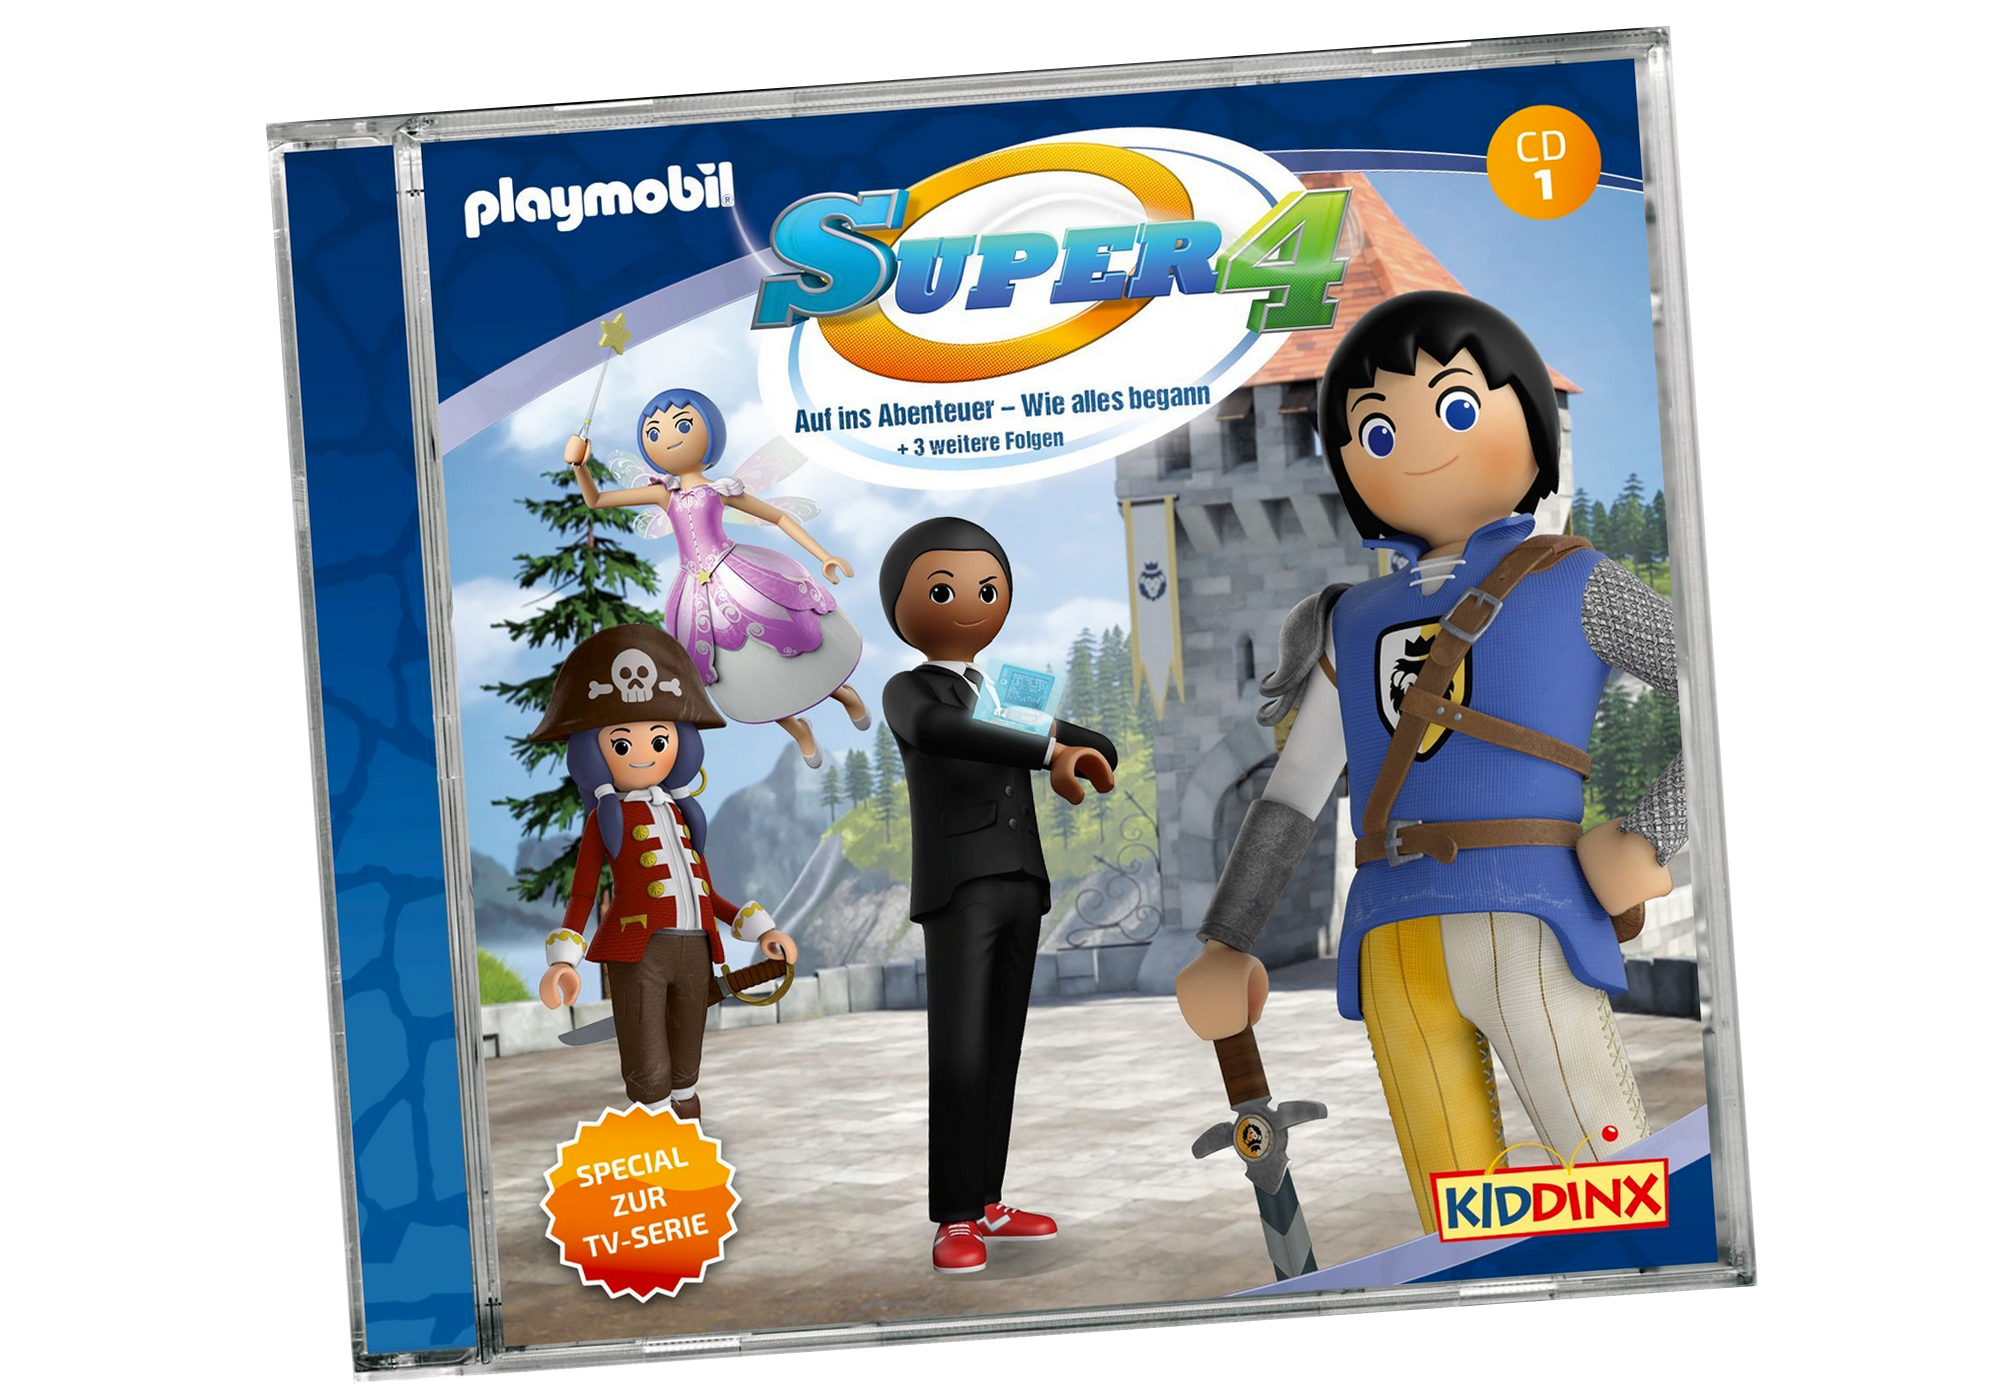 http://media.playmobil.com/i/playmobil/80474_product_detail